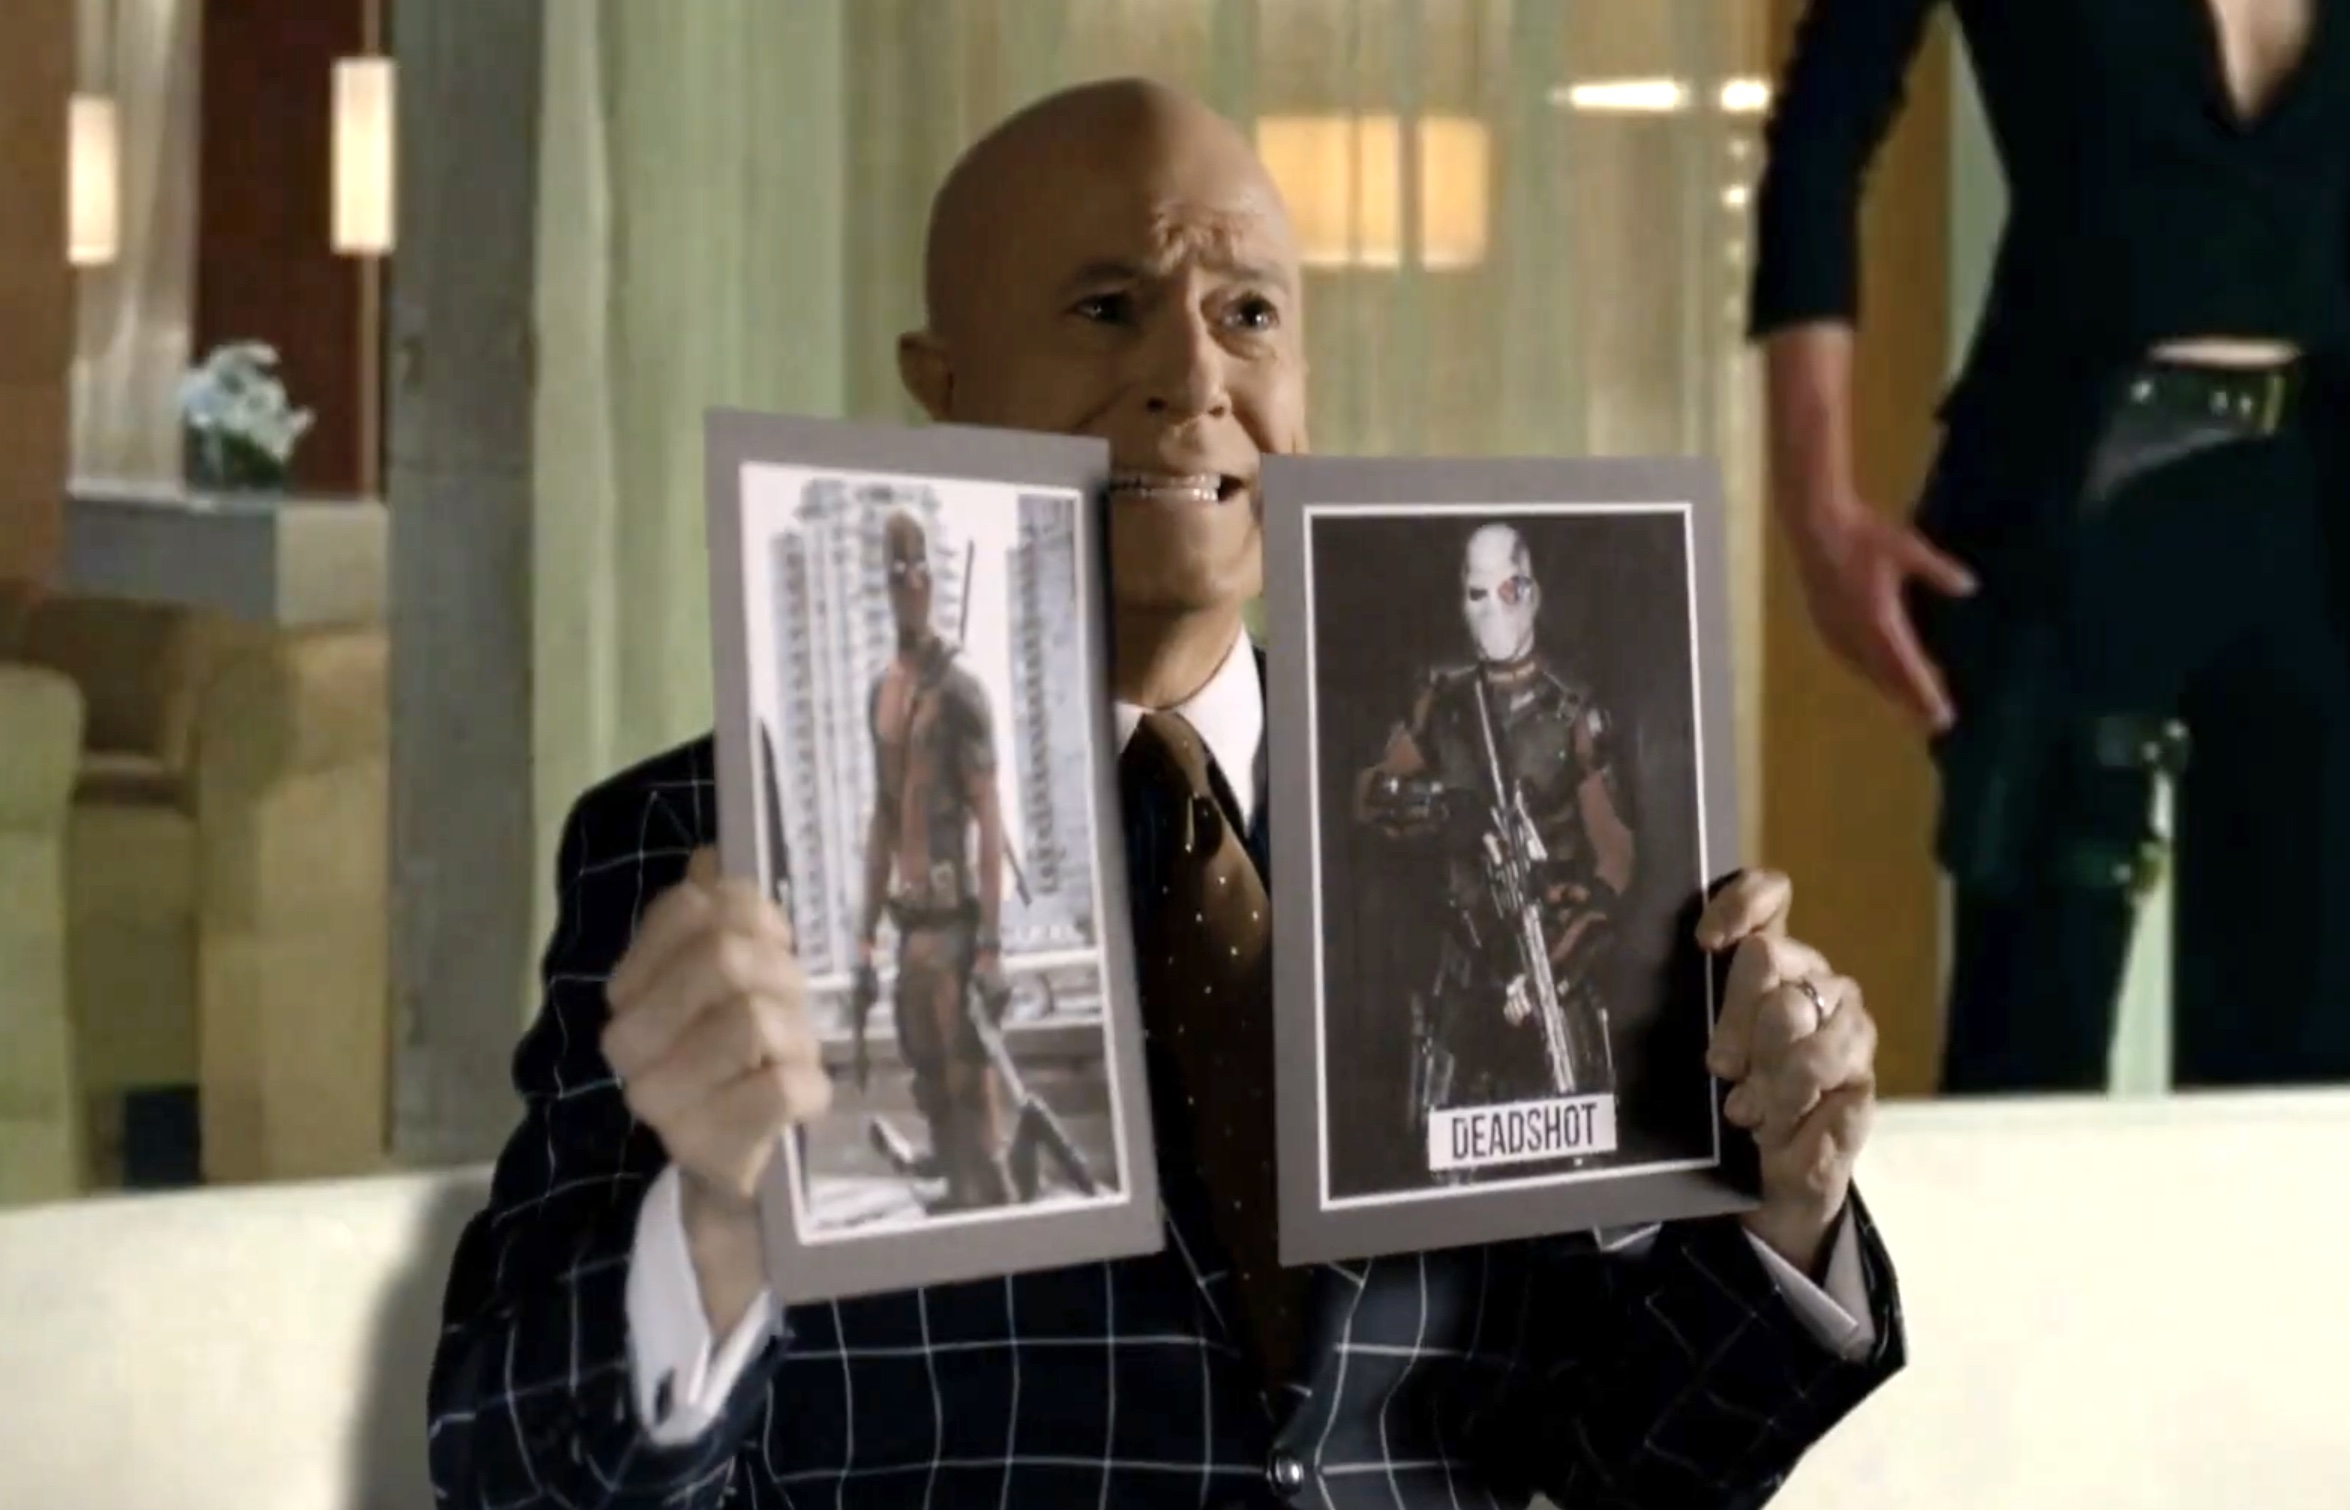 Stephen Colbert holds up pictures of Deadpool and Deadshot